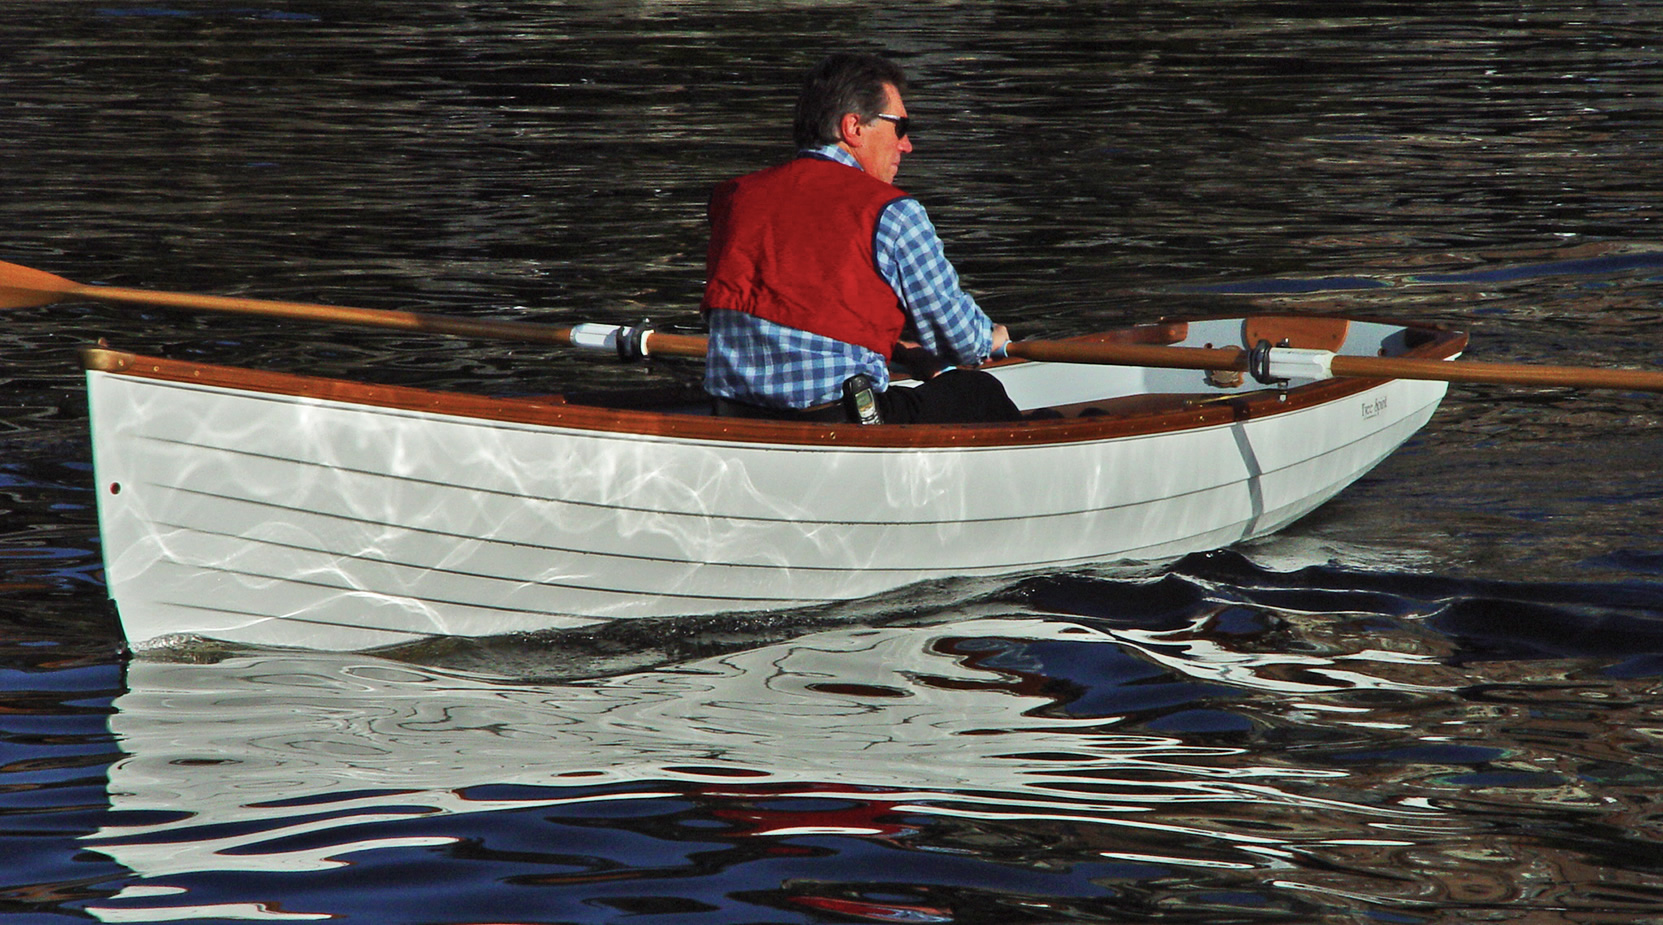 whitehall-tyee-spirit-14-slide-seat-rowing-boats-DSC03265-1663x925